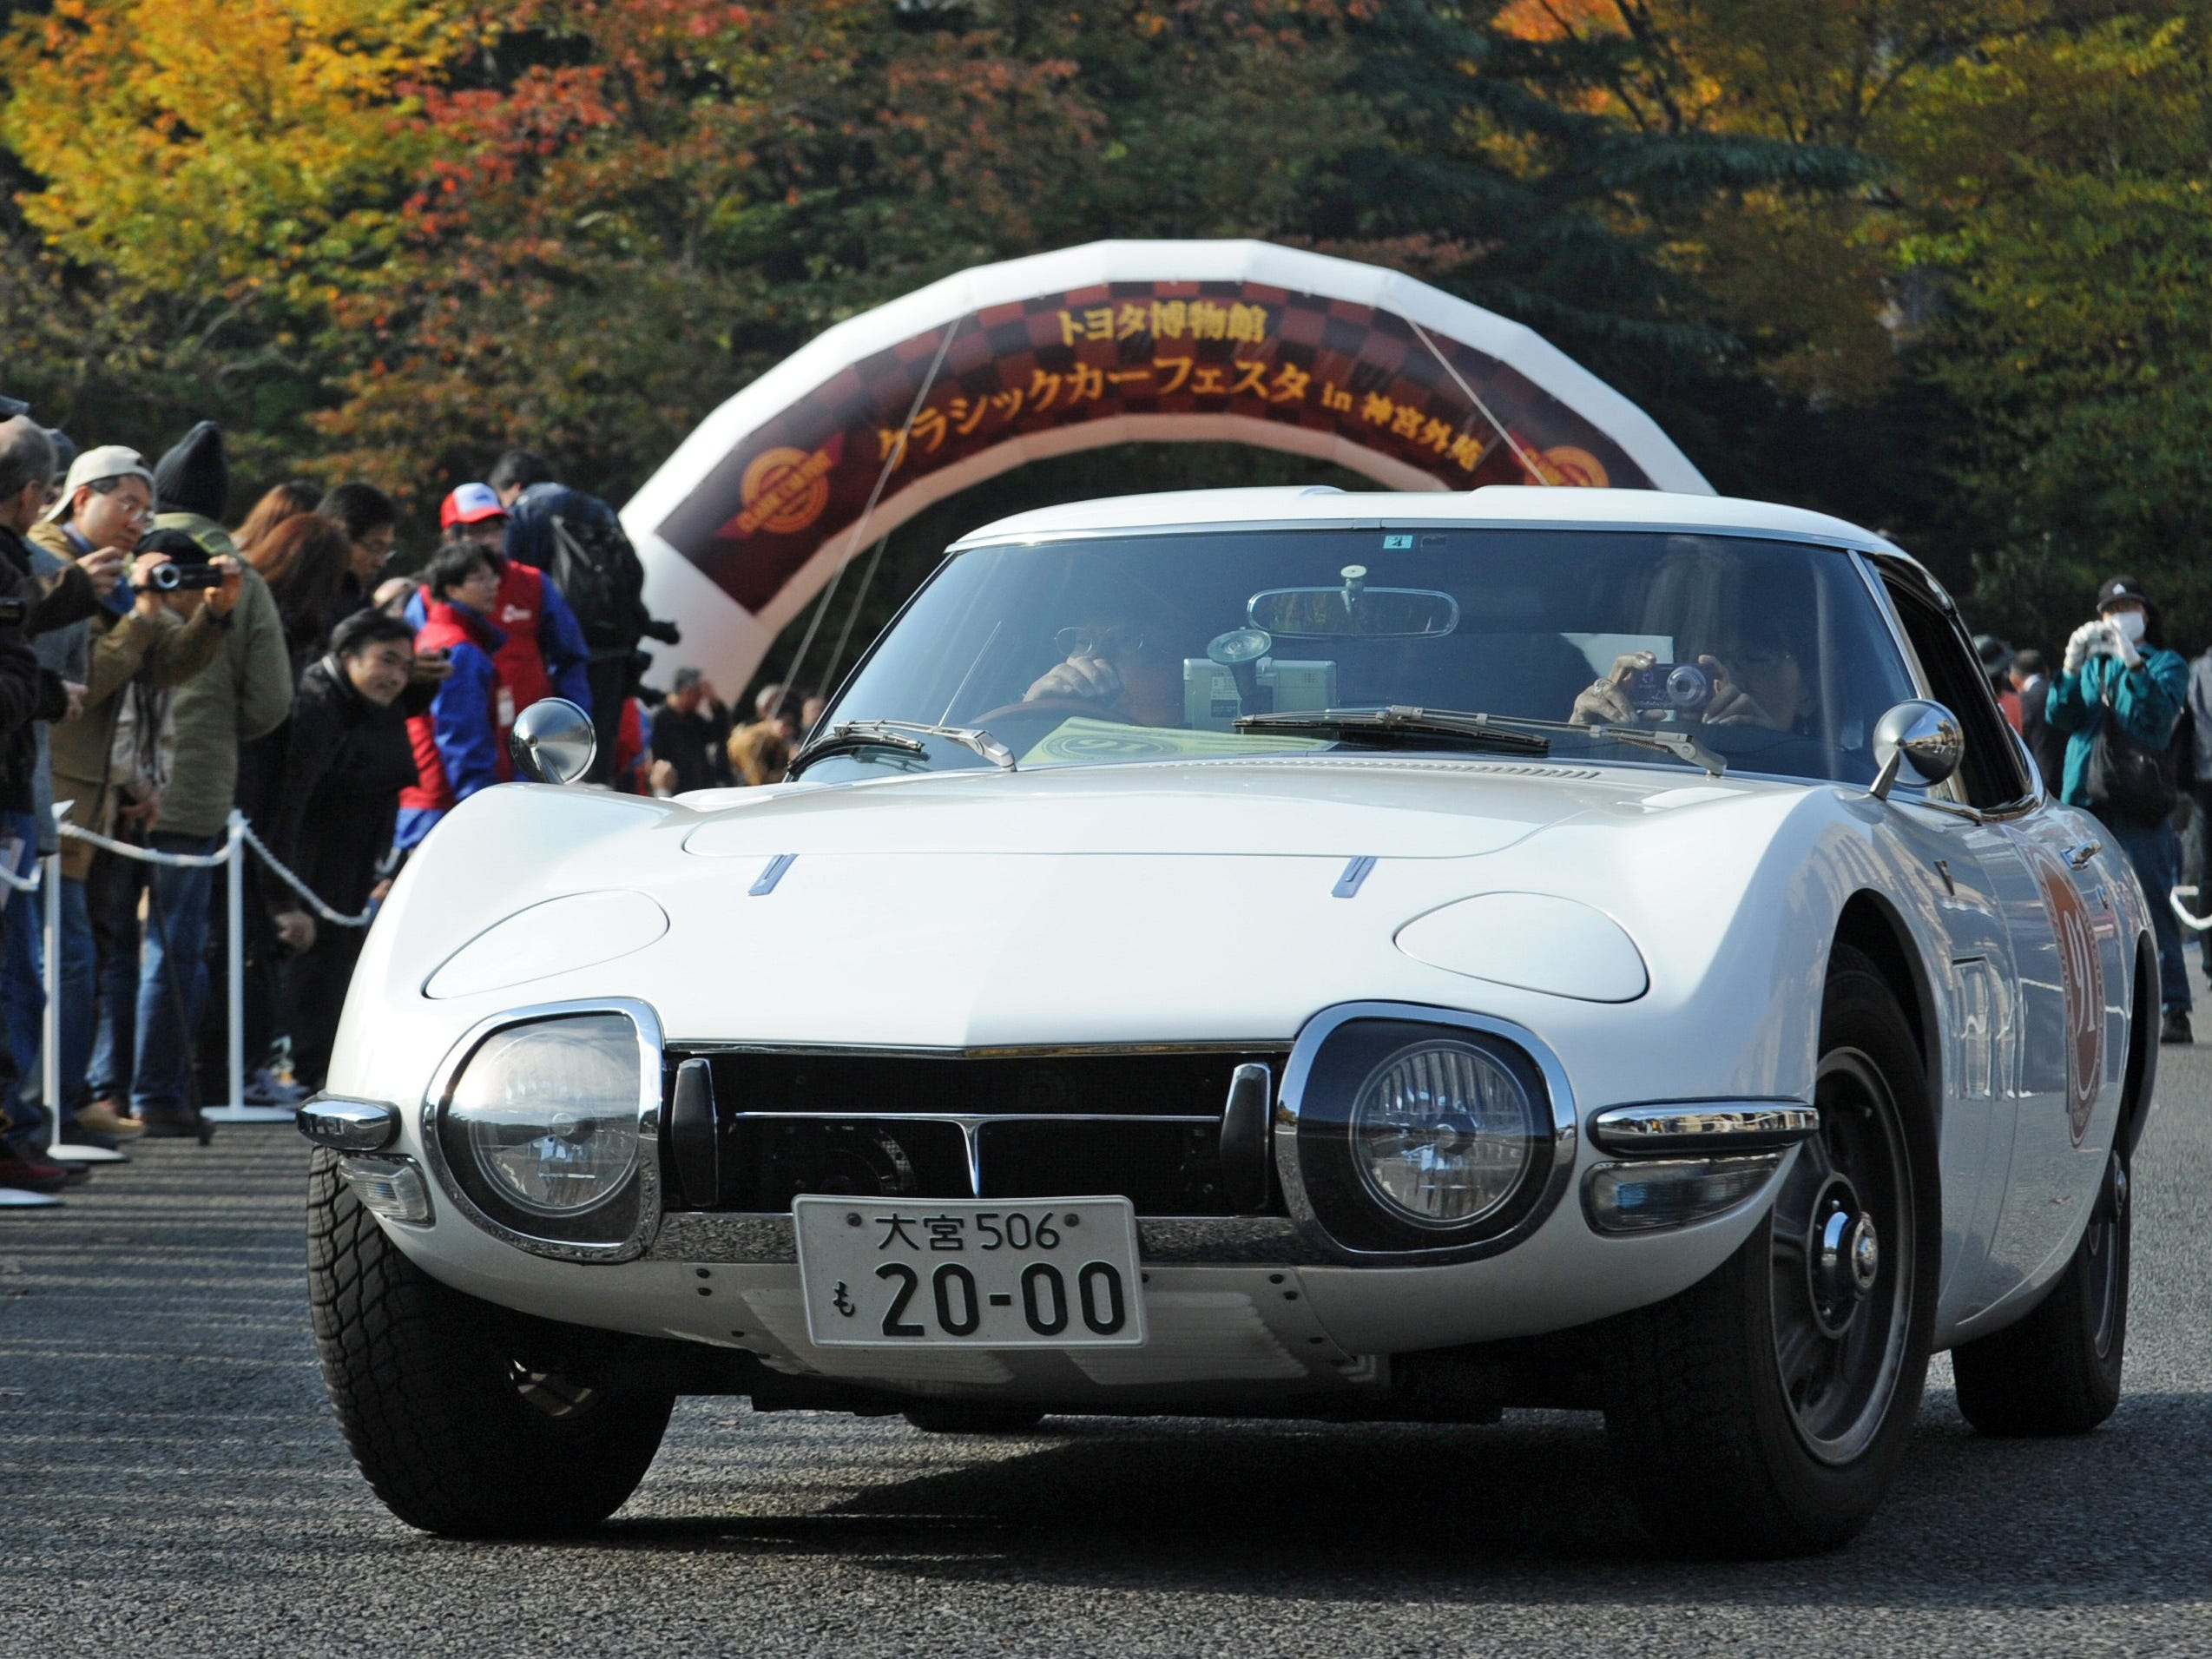 A 1967 Toyota 2000GT takes part in the start of the classic car parade during the 2010 Toyota Automobile Museum Classic Car Festival in central Tokyo on November 27, 2010. Ninety-one vintage cars participated in the parade.    AFP PHOTO / TOSHIFUMI KITAMURA (Photo credit should read TOSHIFUMI KITAMURA/AFP/Getty Images) [Via MerlinFTP Drop]